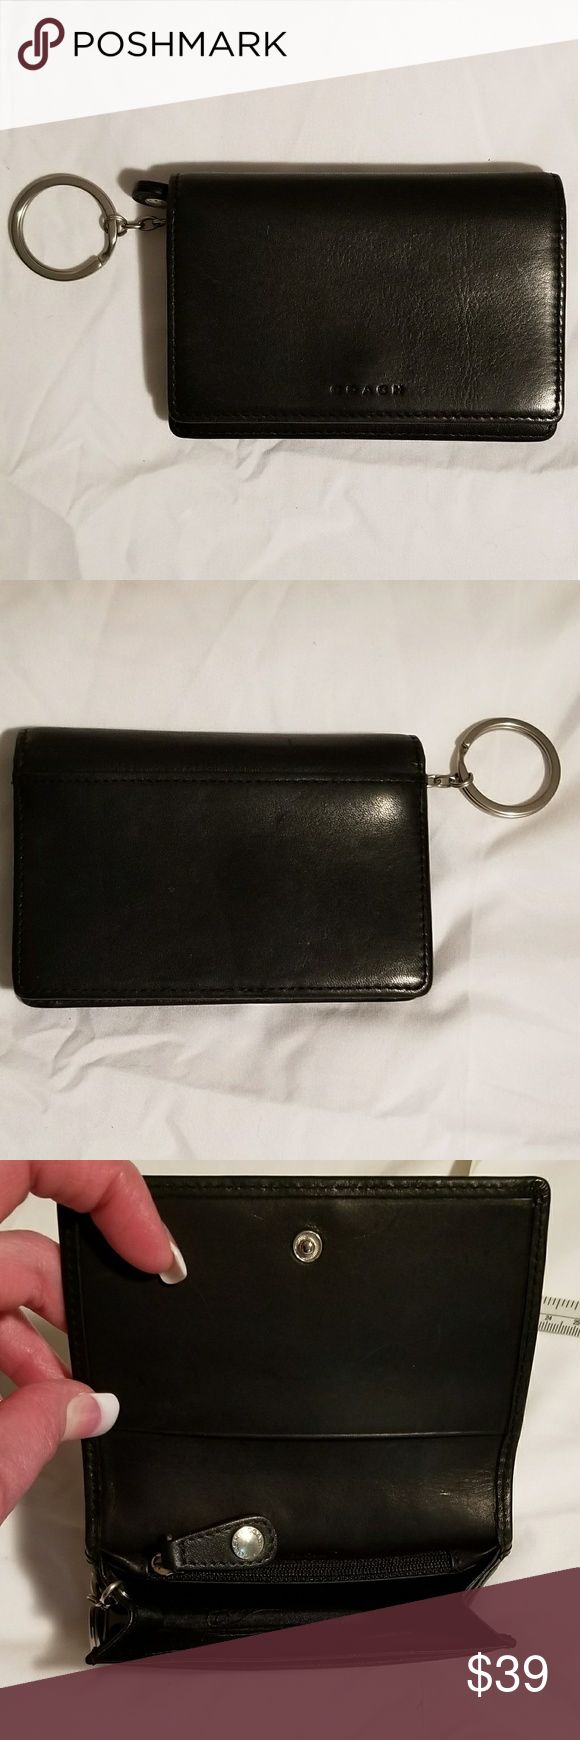 "Vintage Coach Wallet Keychain Never Used Vintage Coach Wallet Keychain Buttery Soft Black Leather, Silver Hardware Just Cleaned & Conditioned I've Had For Years In A Drawer But, Never Used Flap Has Snap Closure & One Slit Pocket Inside Flap, One Outside Slit Pocket On Back, One Inside Slit Pocket On Front, One Large Expandable Pocket Inside, One Zip Compartment Inside, One Slit Pocket Behind Zip Compartment & Attached Silver Key Ring.  Tons Of Storage For A Smaller Wallet!! Measures 5"" Wide…"